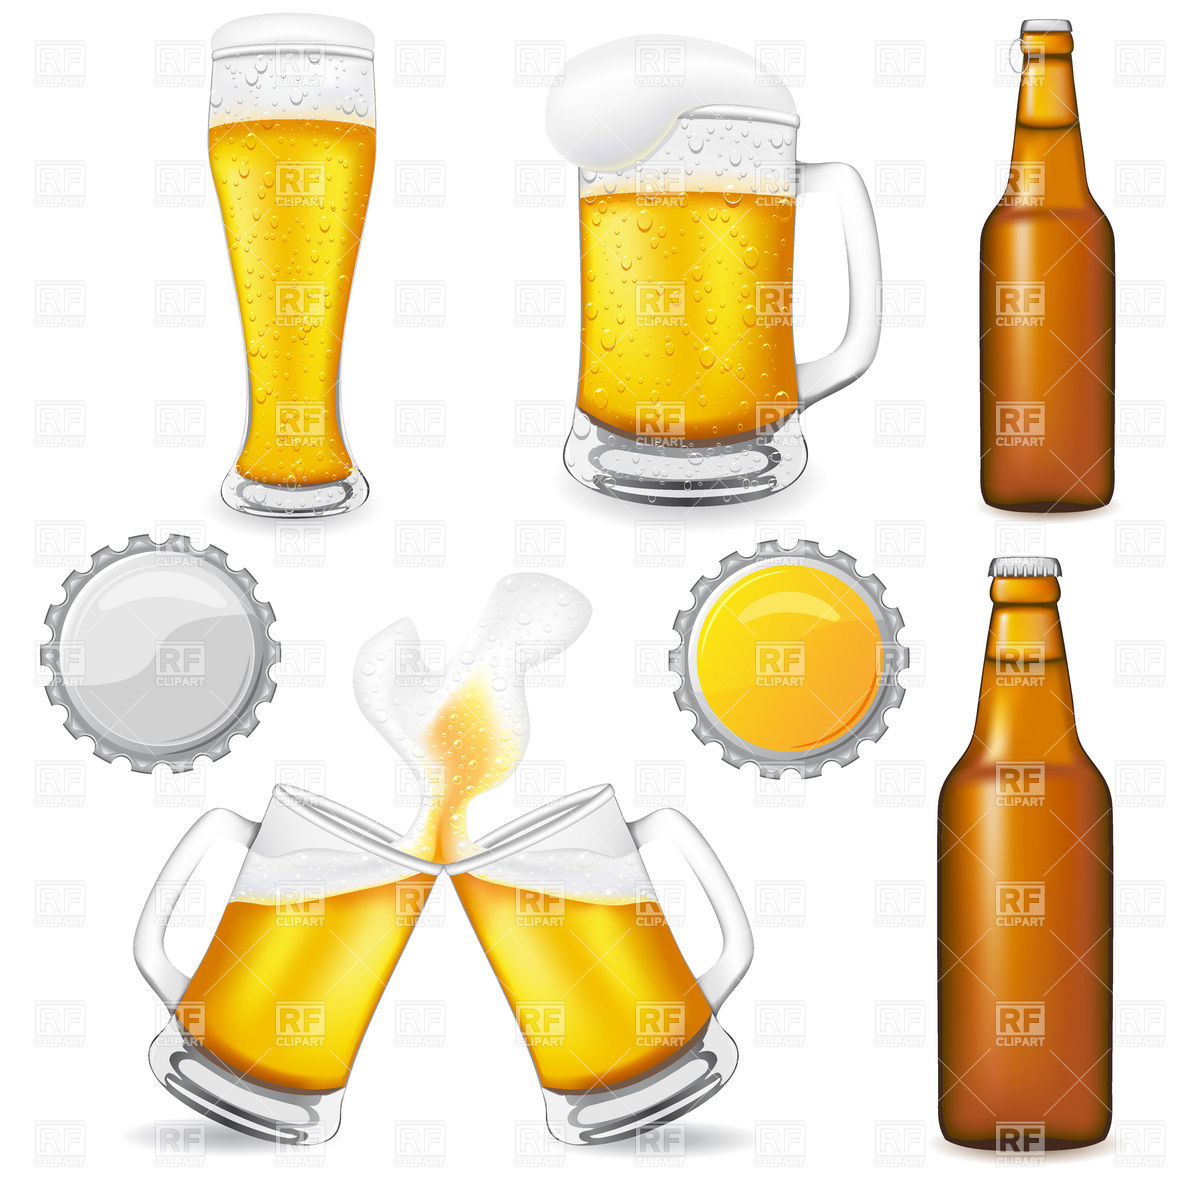 Brown beer bottle, glass and mugs Vector Image #19769.